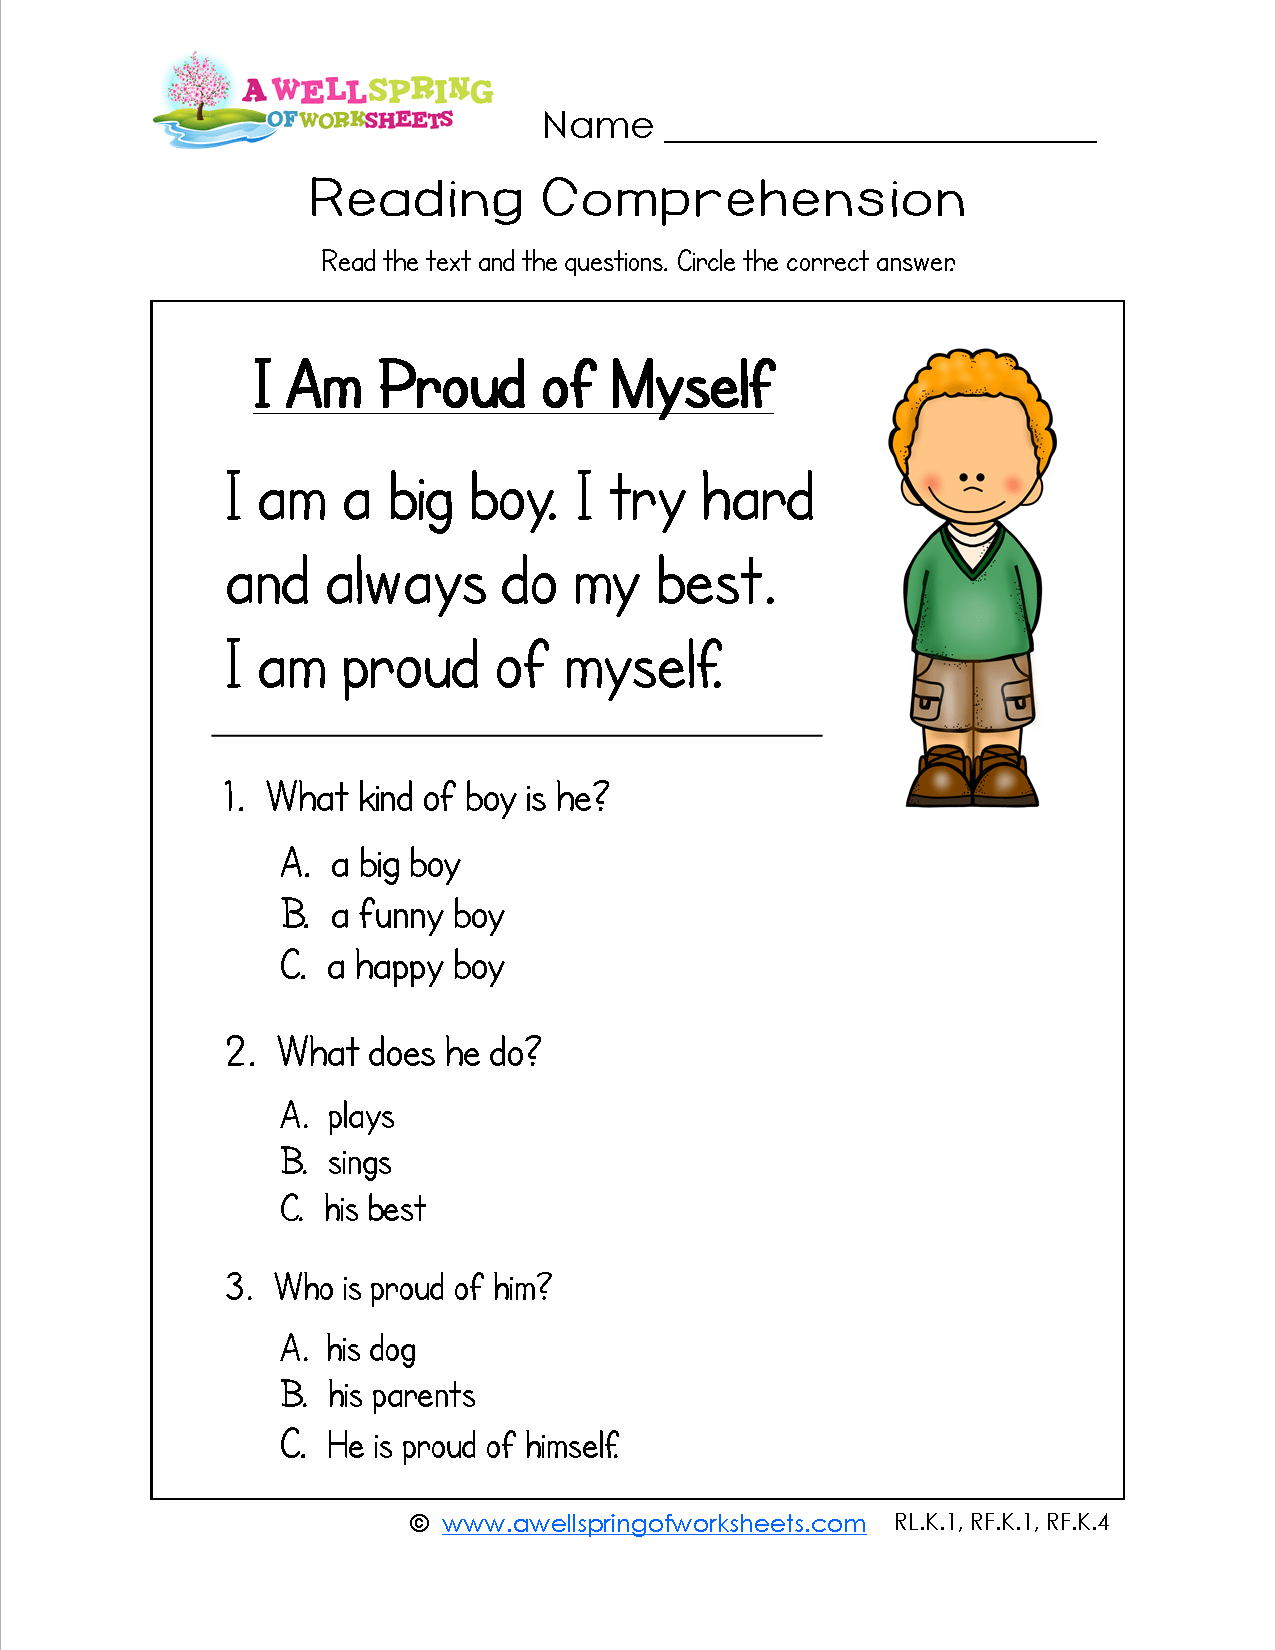 Every Kid Needs To Feel Proud Of Themselves And This Kindergarten Reading Comprehension